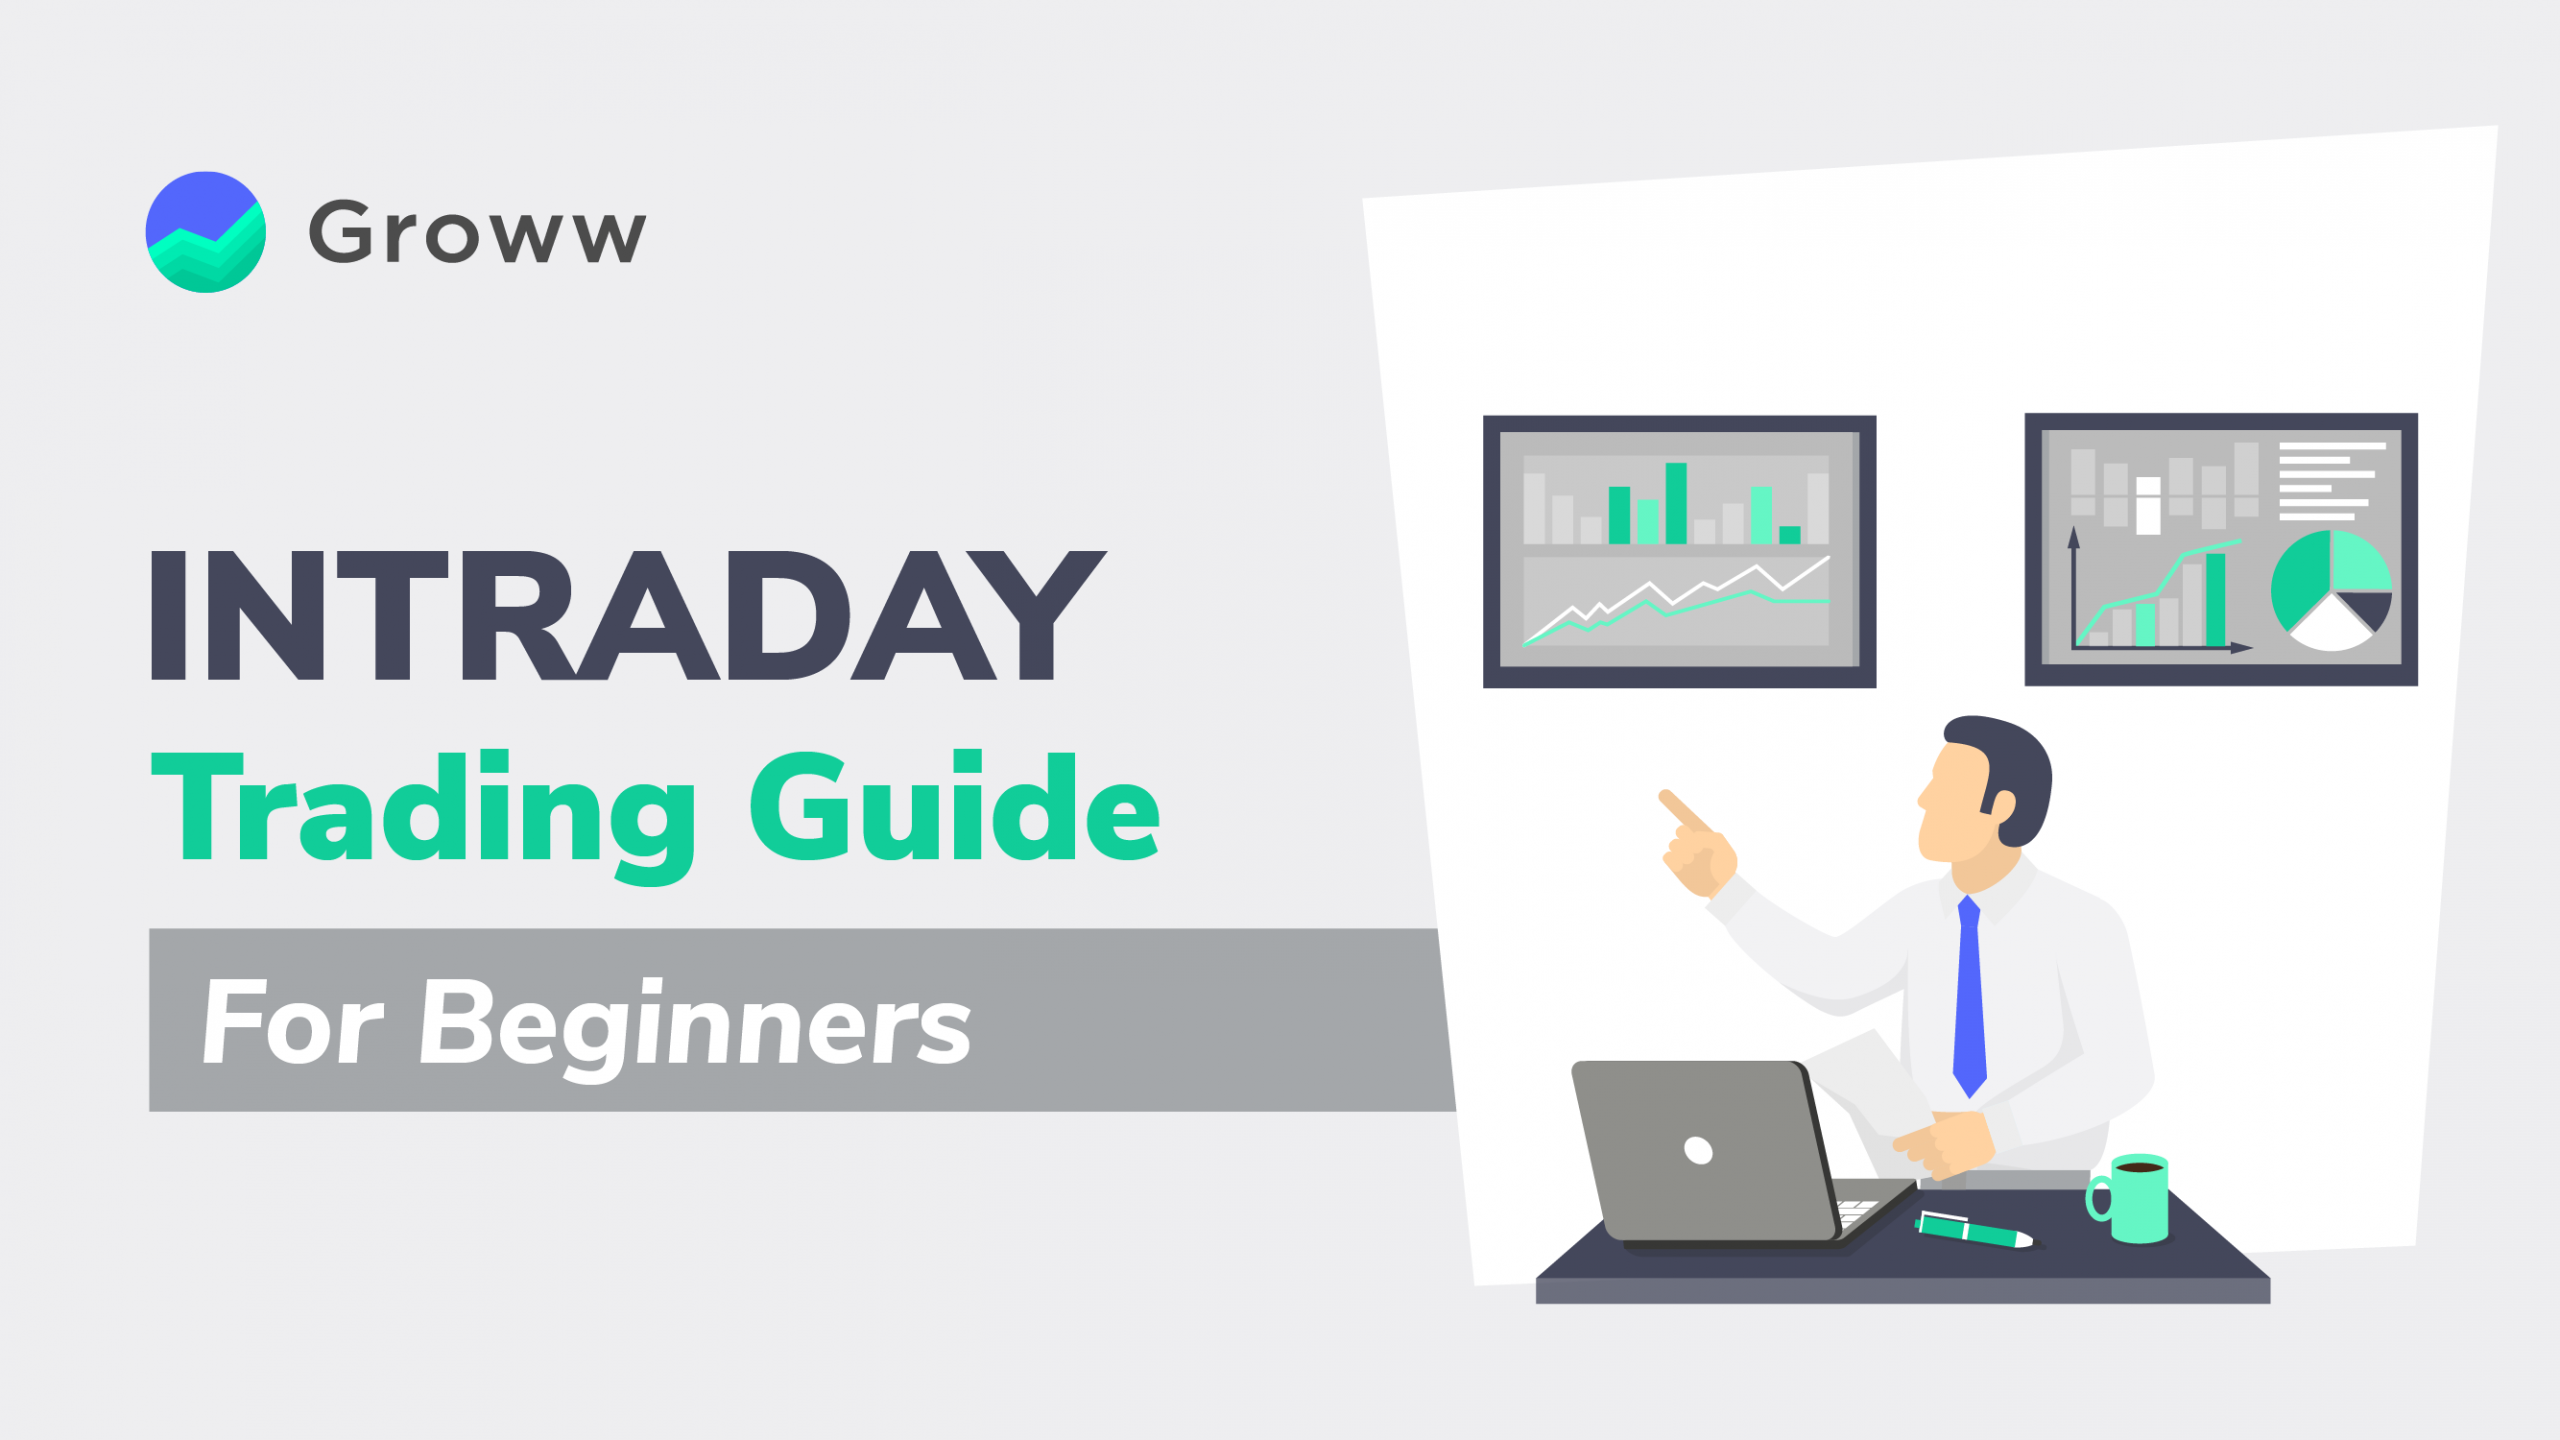 Intraday trading guide for beginners